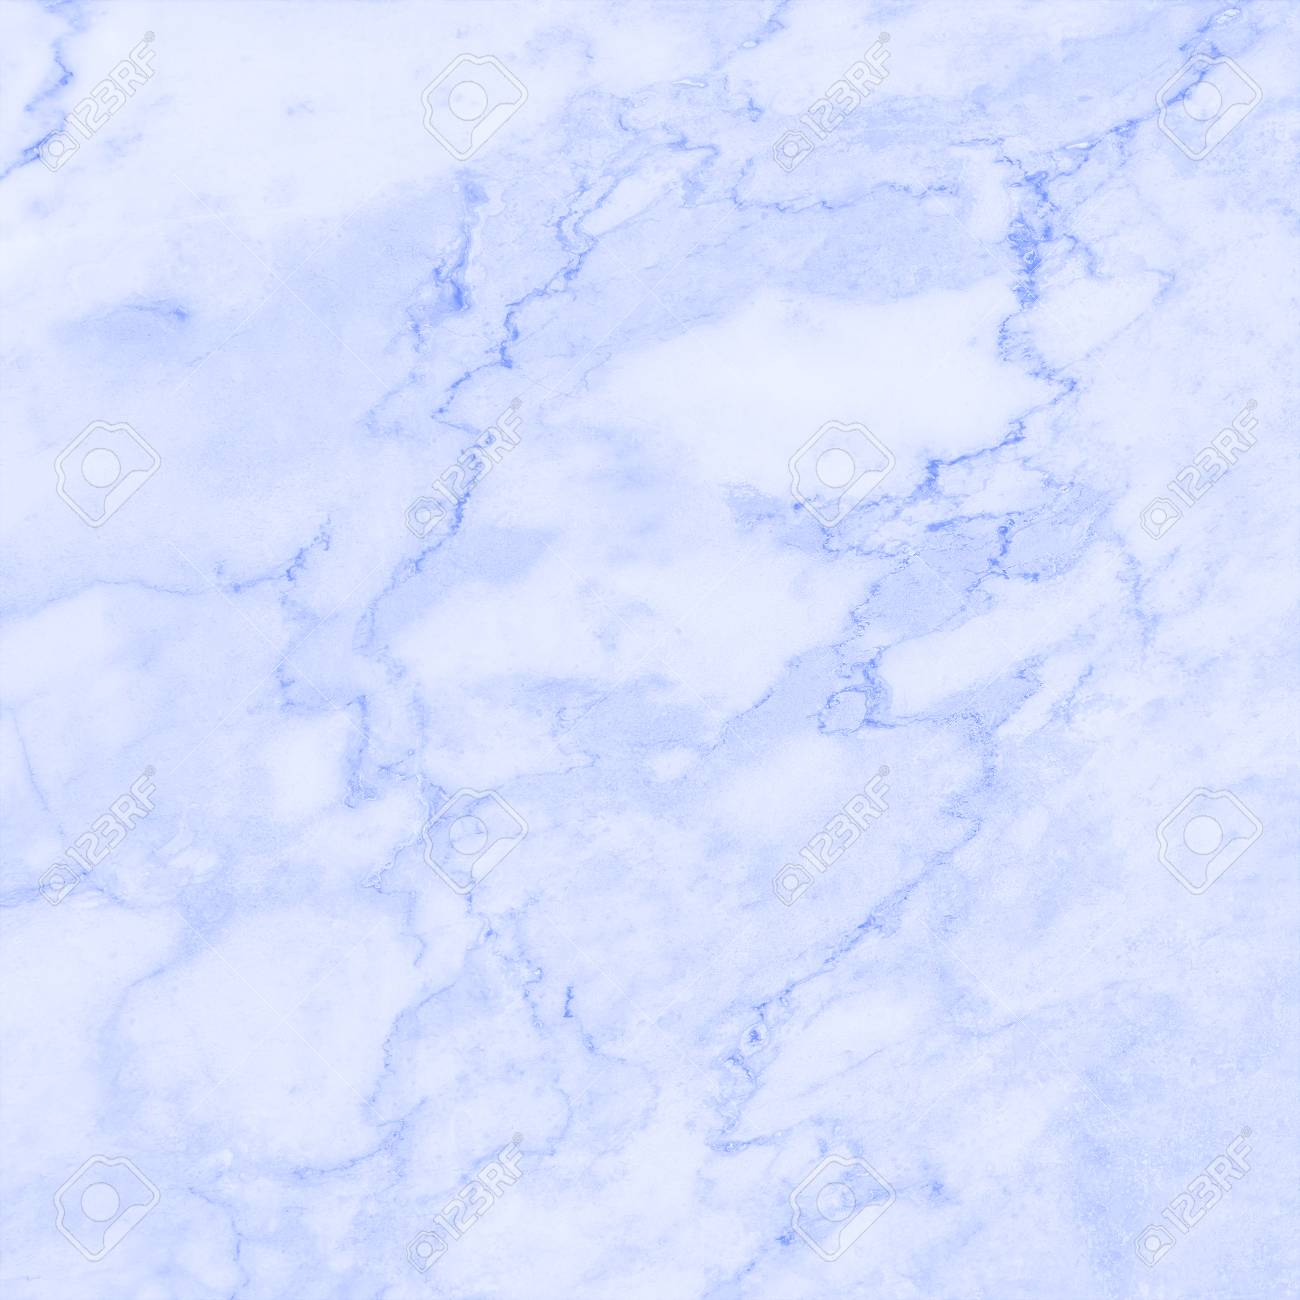 Blue Marble Texture Background Abstract Marble Texture Natural Stock Photo Picture And Royalty Free Image Image 86690703